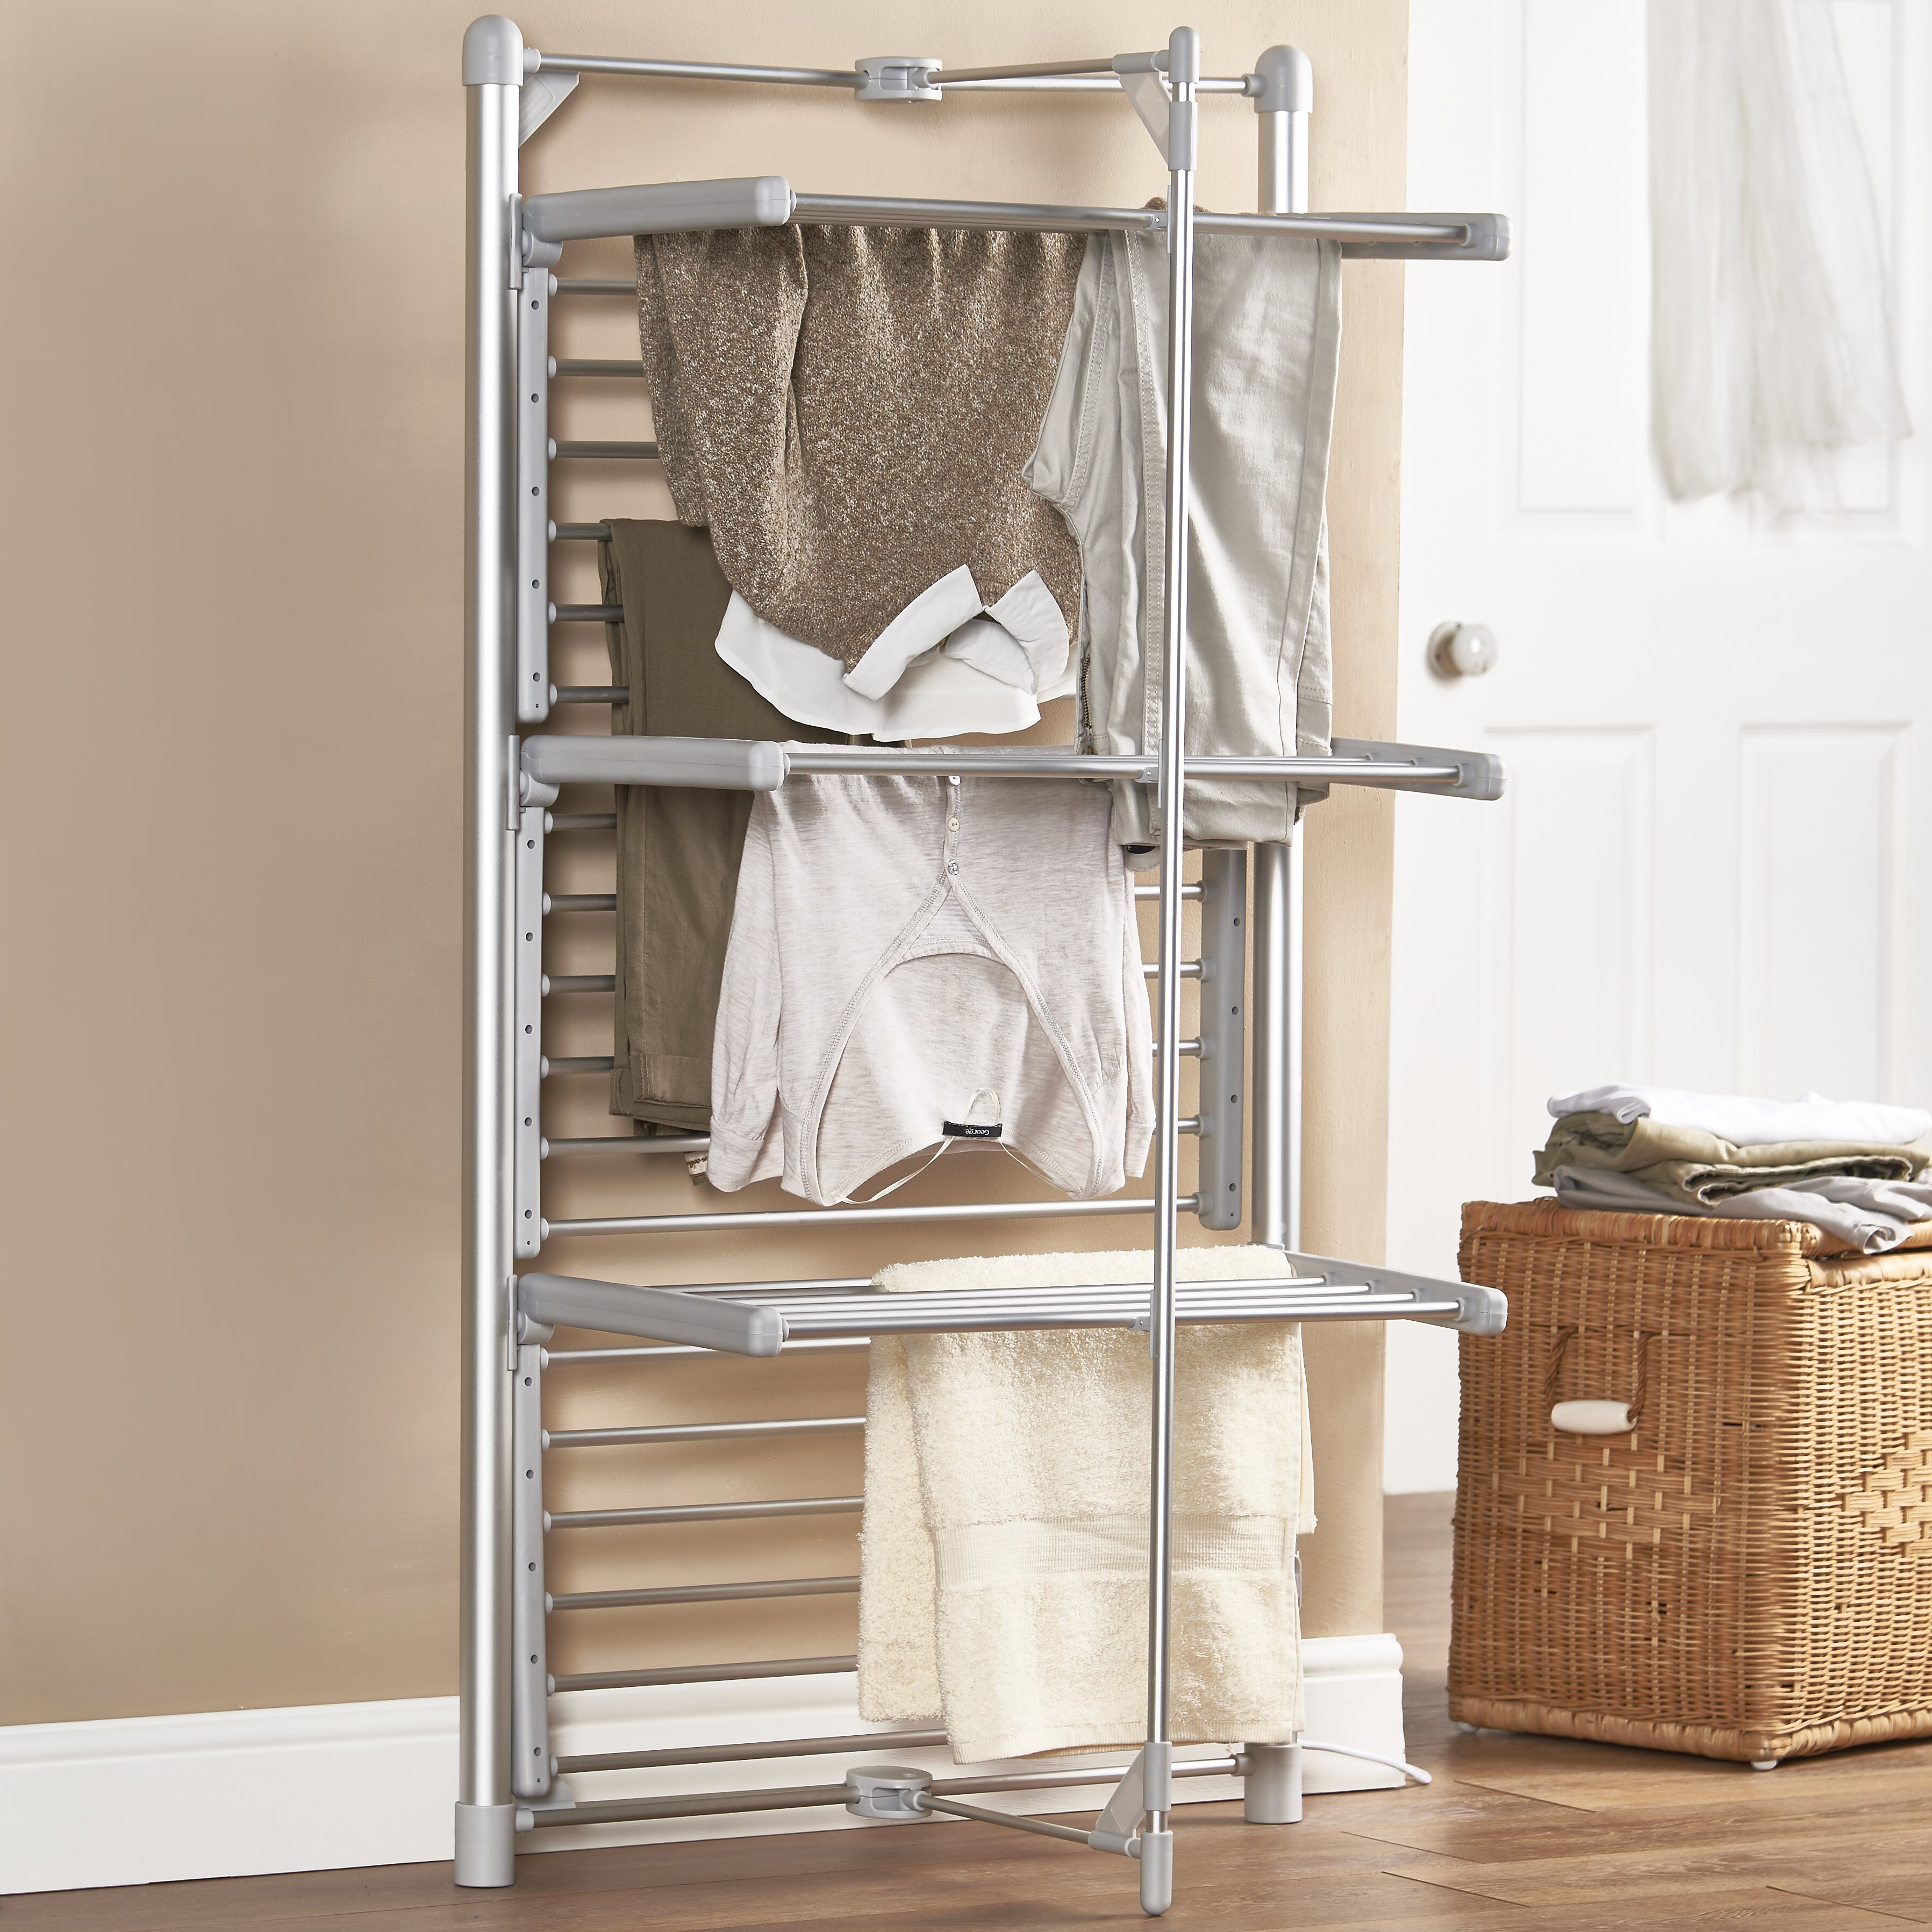 Heated Clothes Drying Rack Wayfair